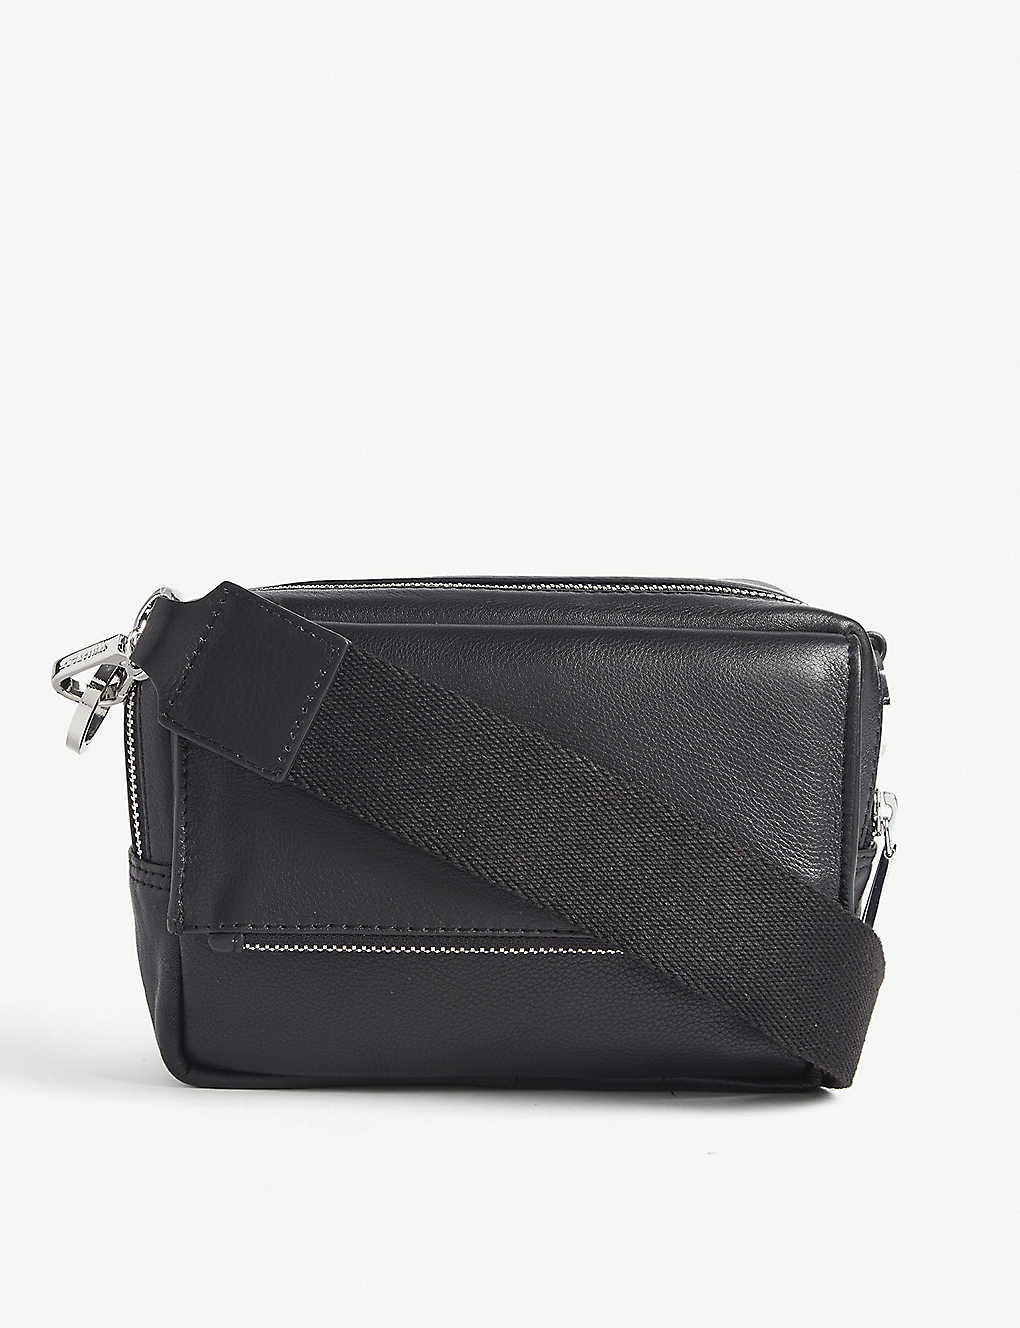 WHISTLES - Bibi leather cross-body bag  796e4e31cbeae